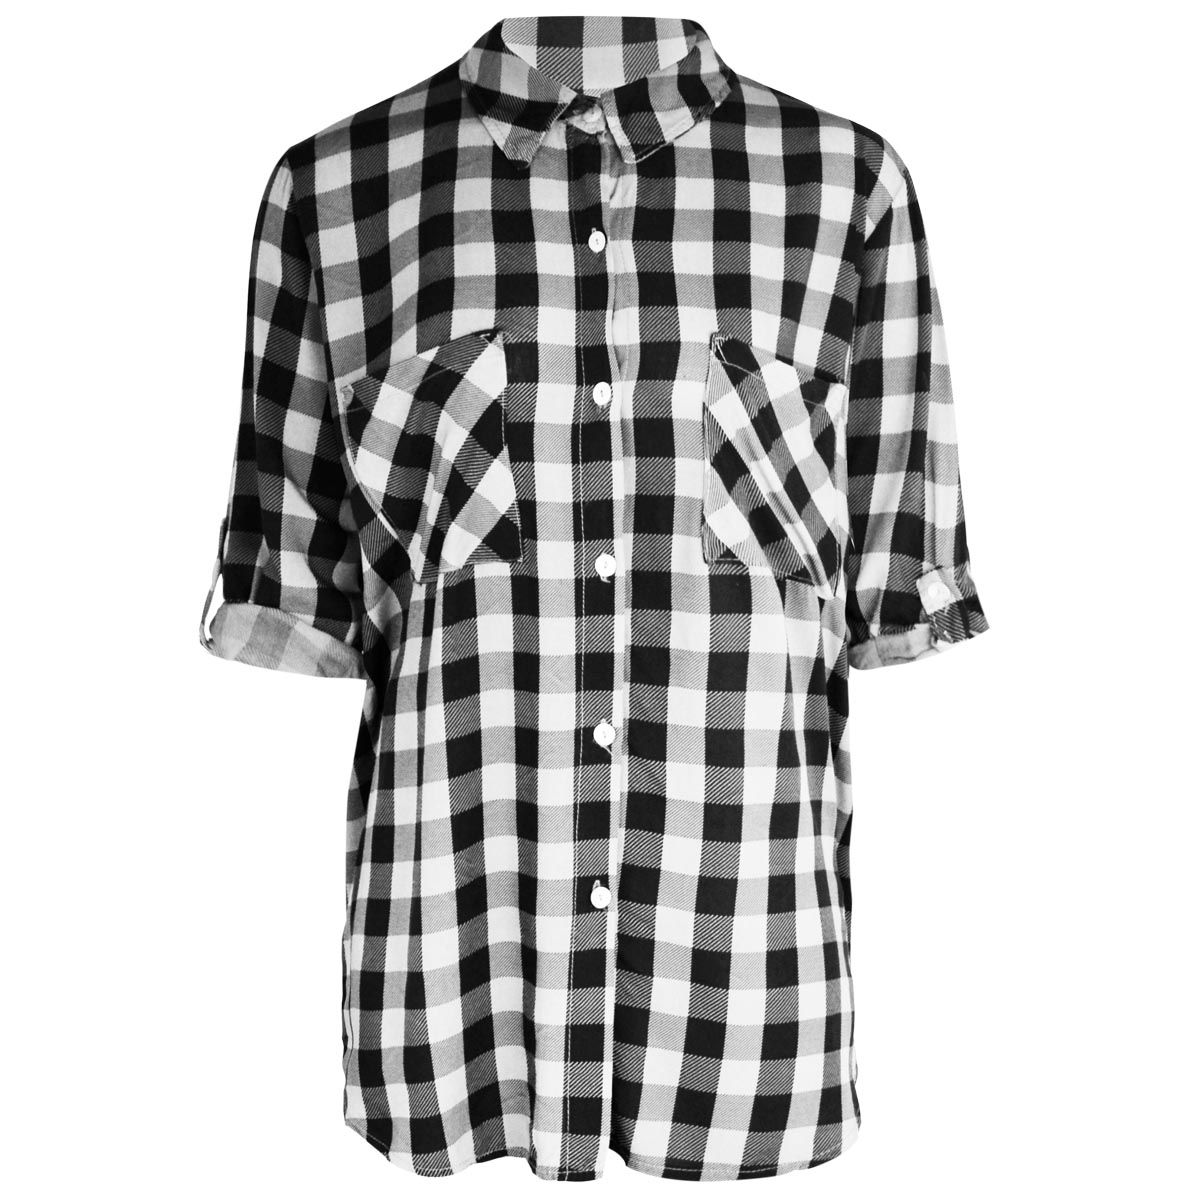 June 2017 artee shirt part 65 for Black and white checker shirt